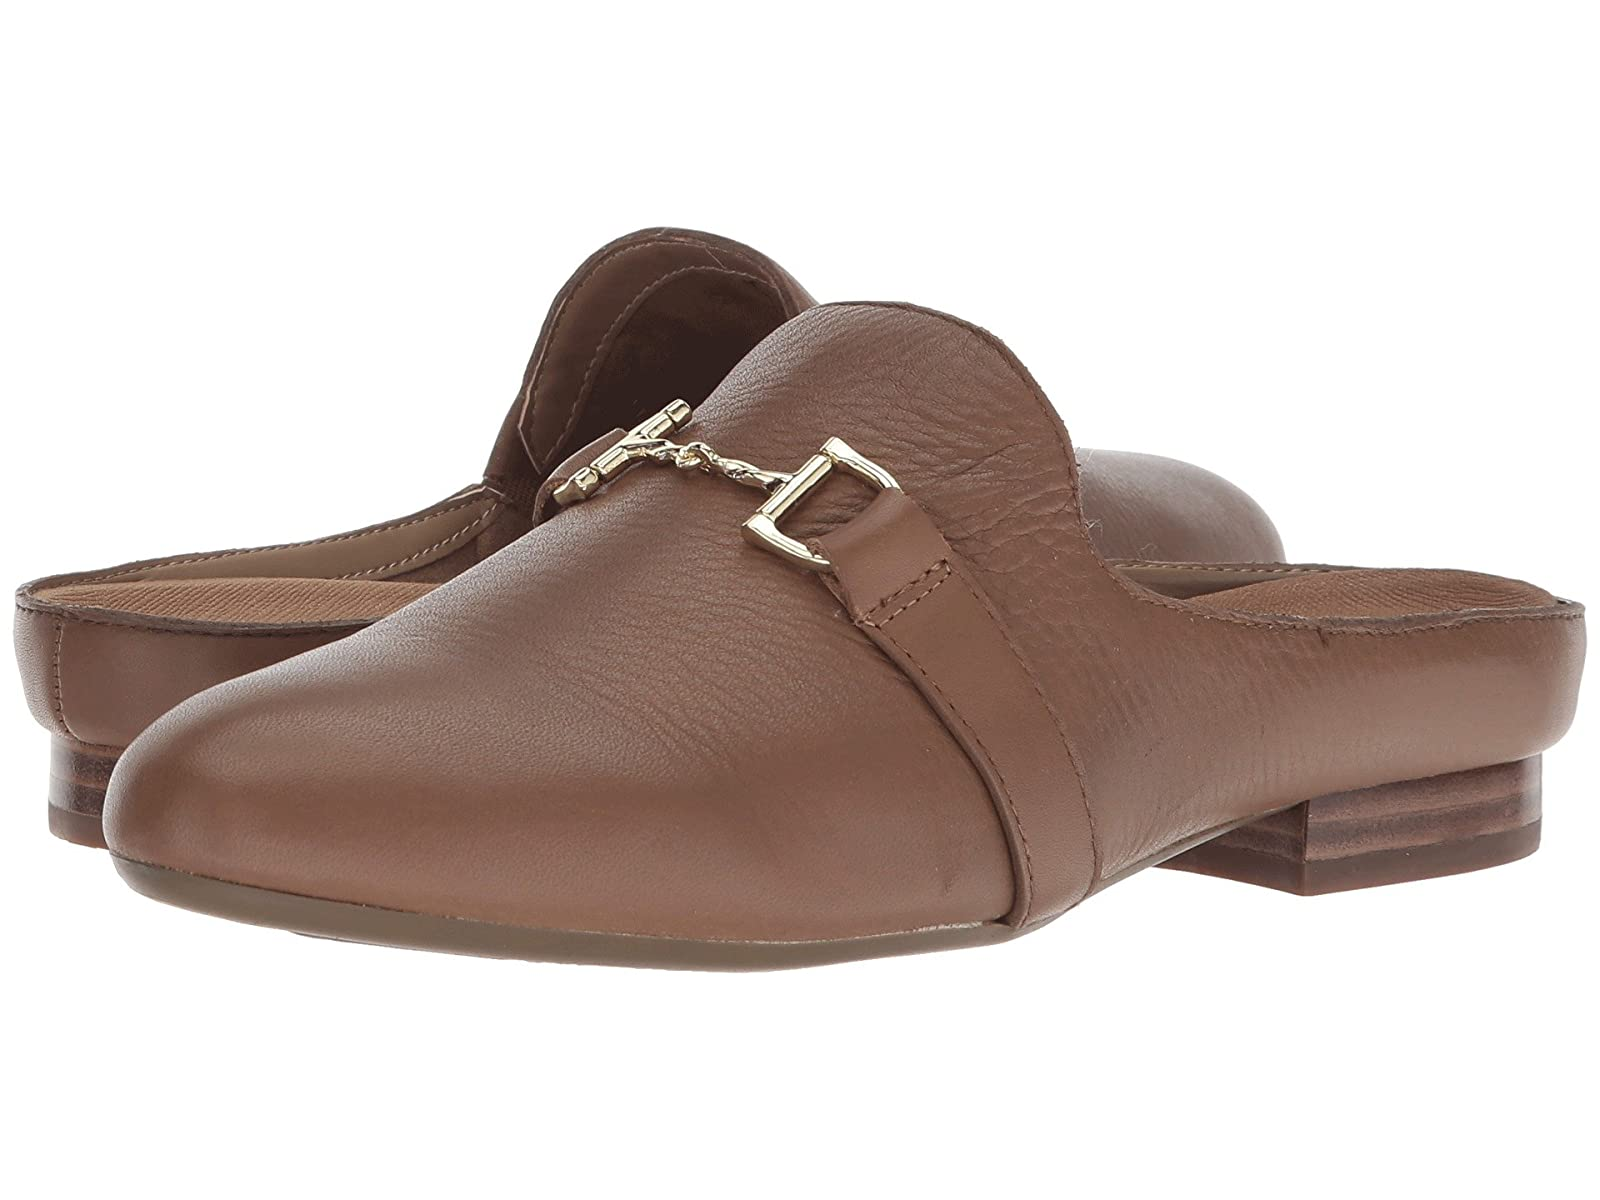 Aerosoles Out of SightCheap and distinctive eye-catching shoes